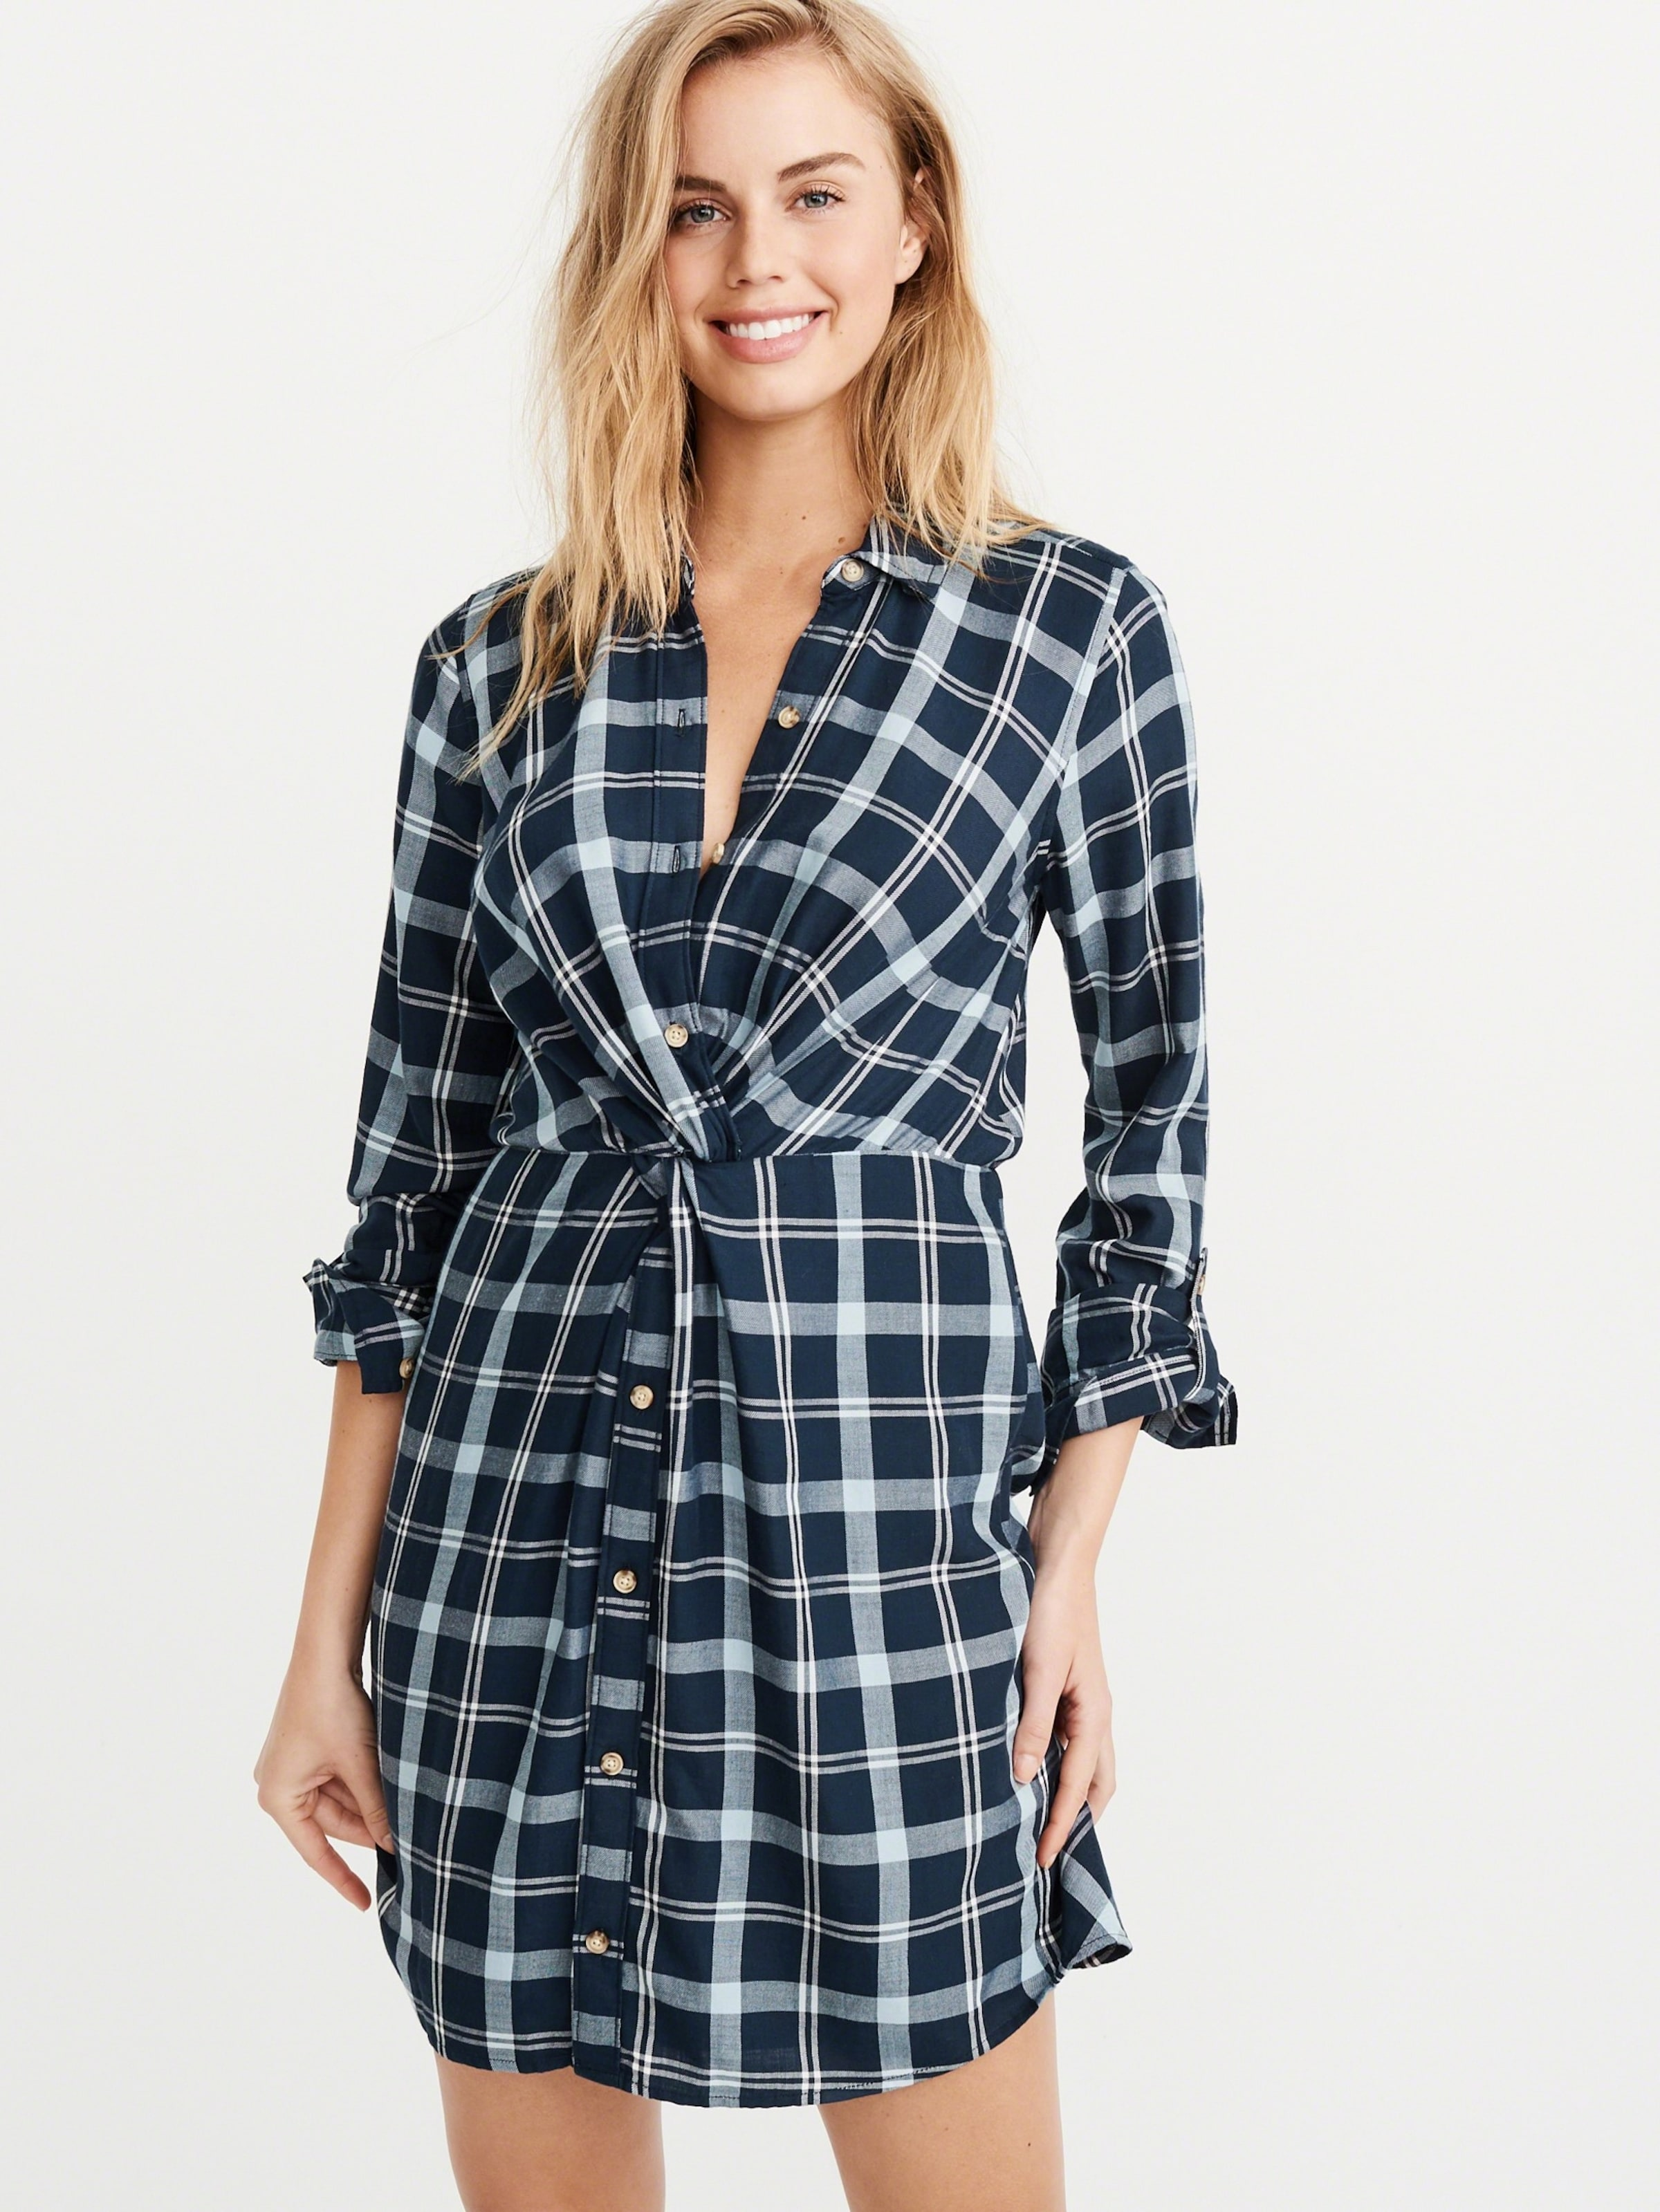 Blau 'knot Shirtdress' Fitch Kleid Front Abercrombieamp; In BdrCoexW